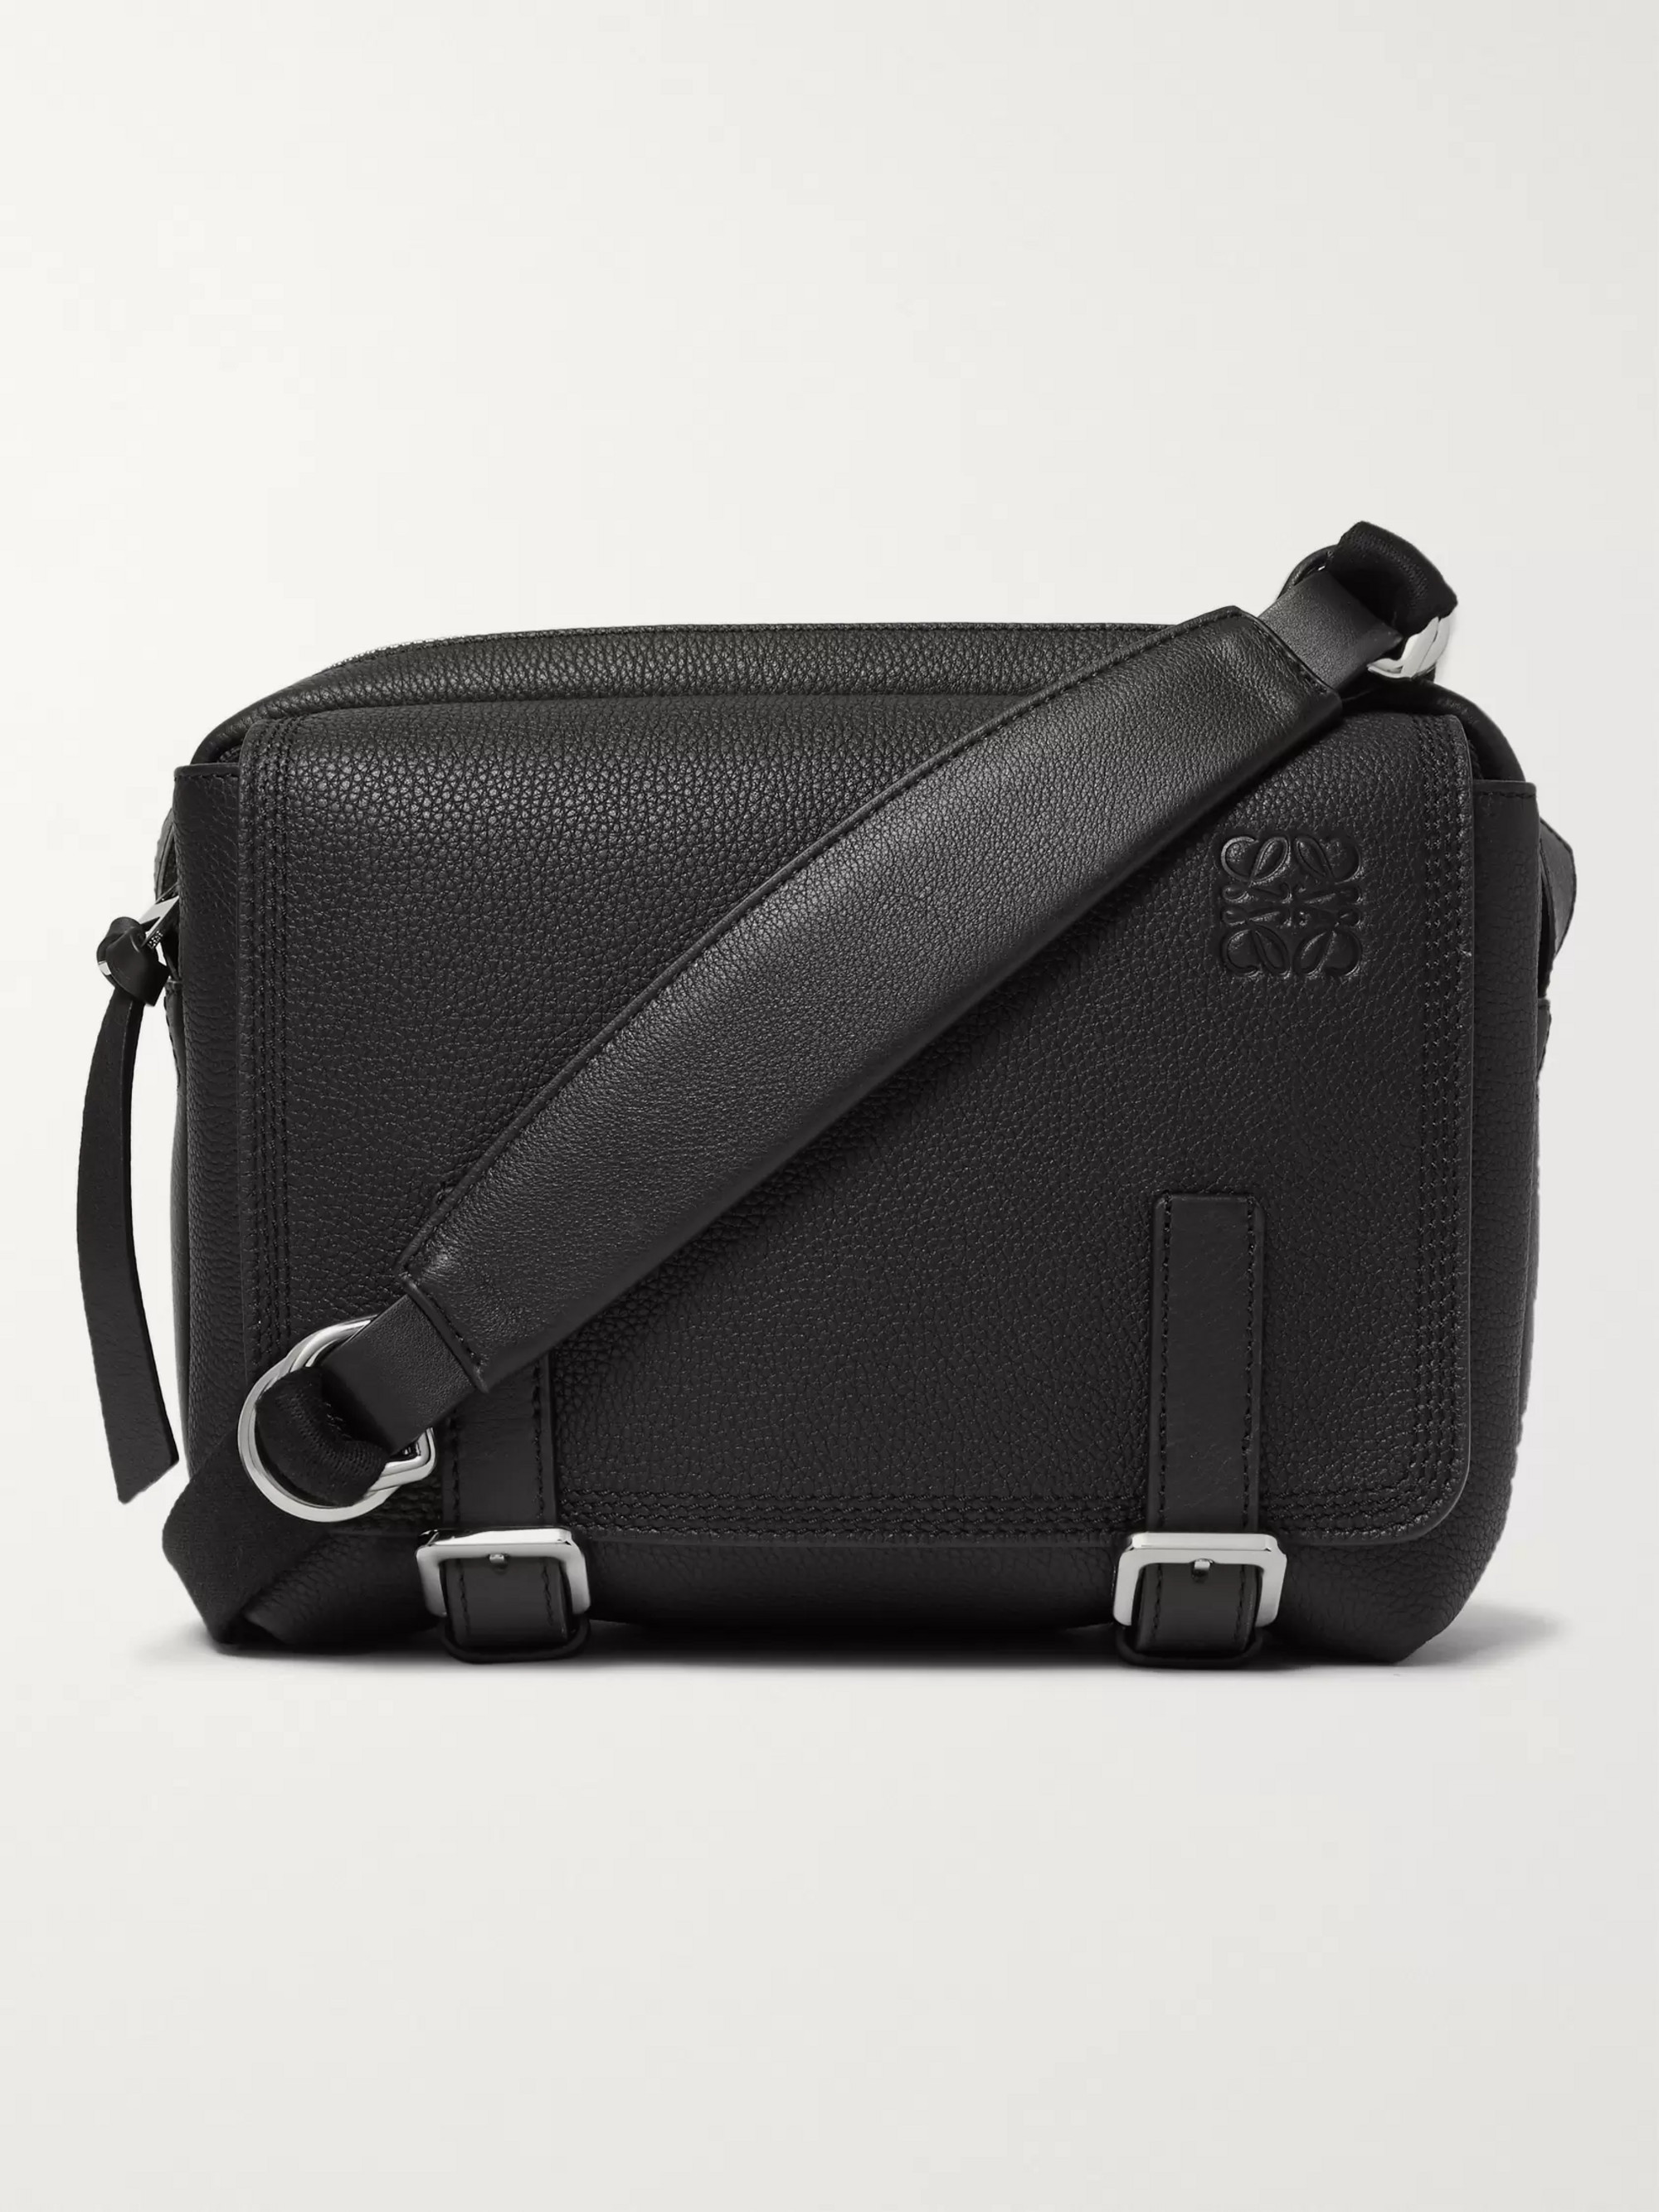 Loewe Military XS Full-Grain Leather Messenger Bag